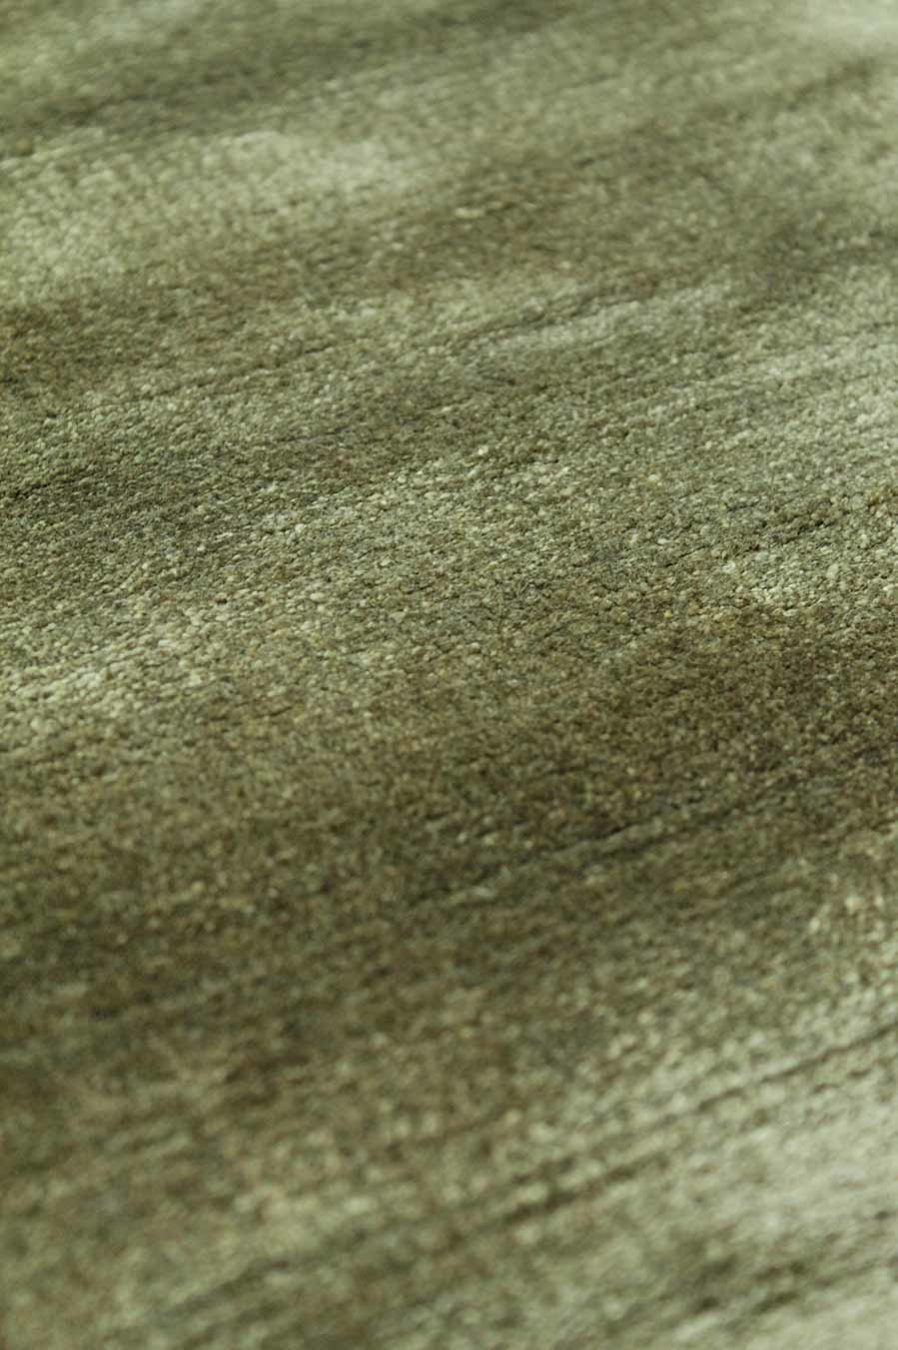 Detailed view of metallic Glam rug in olive green colour